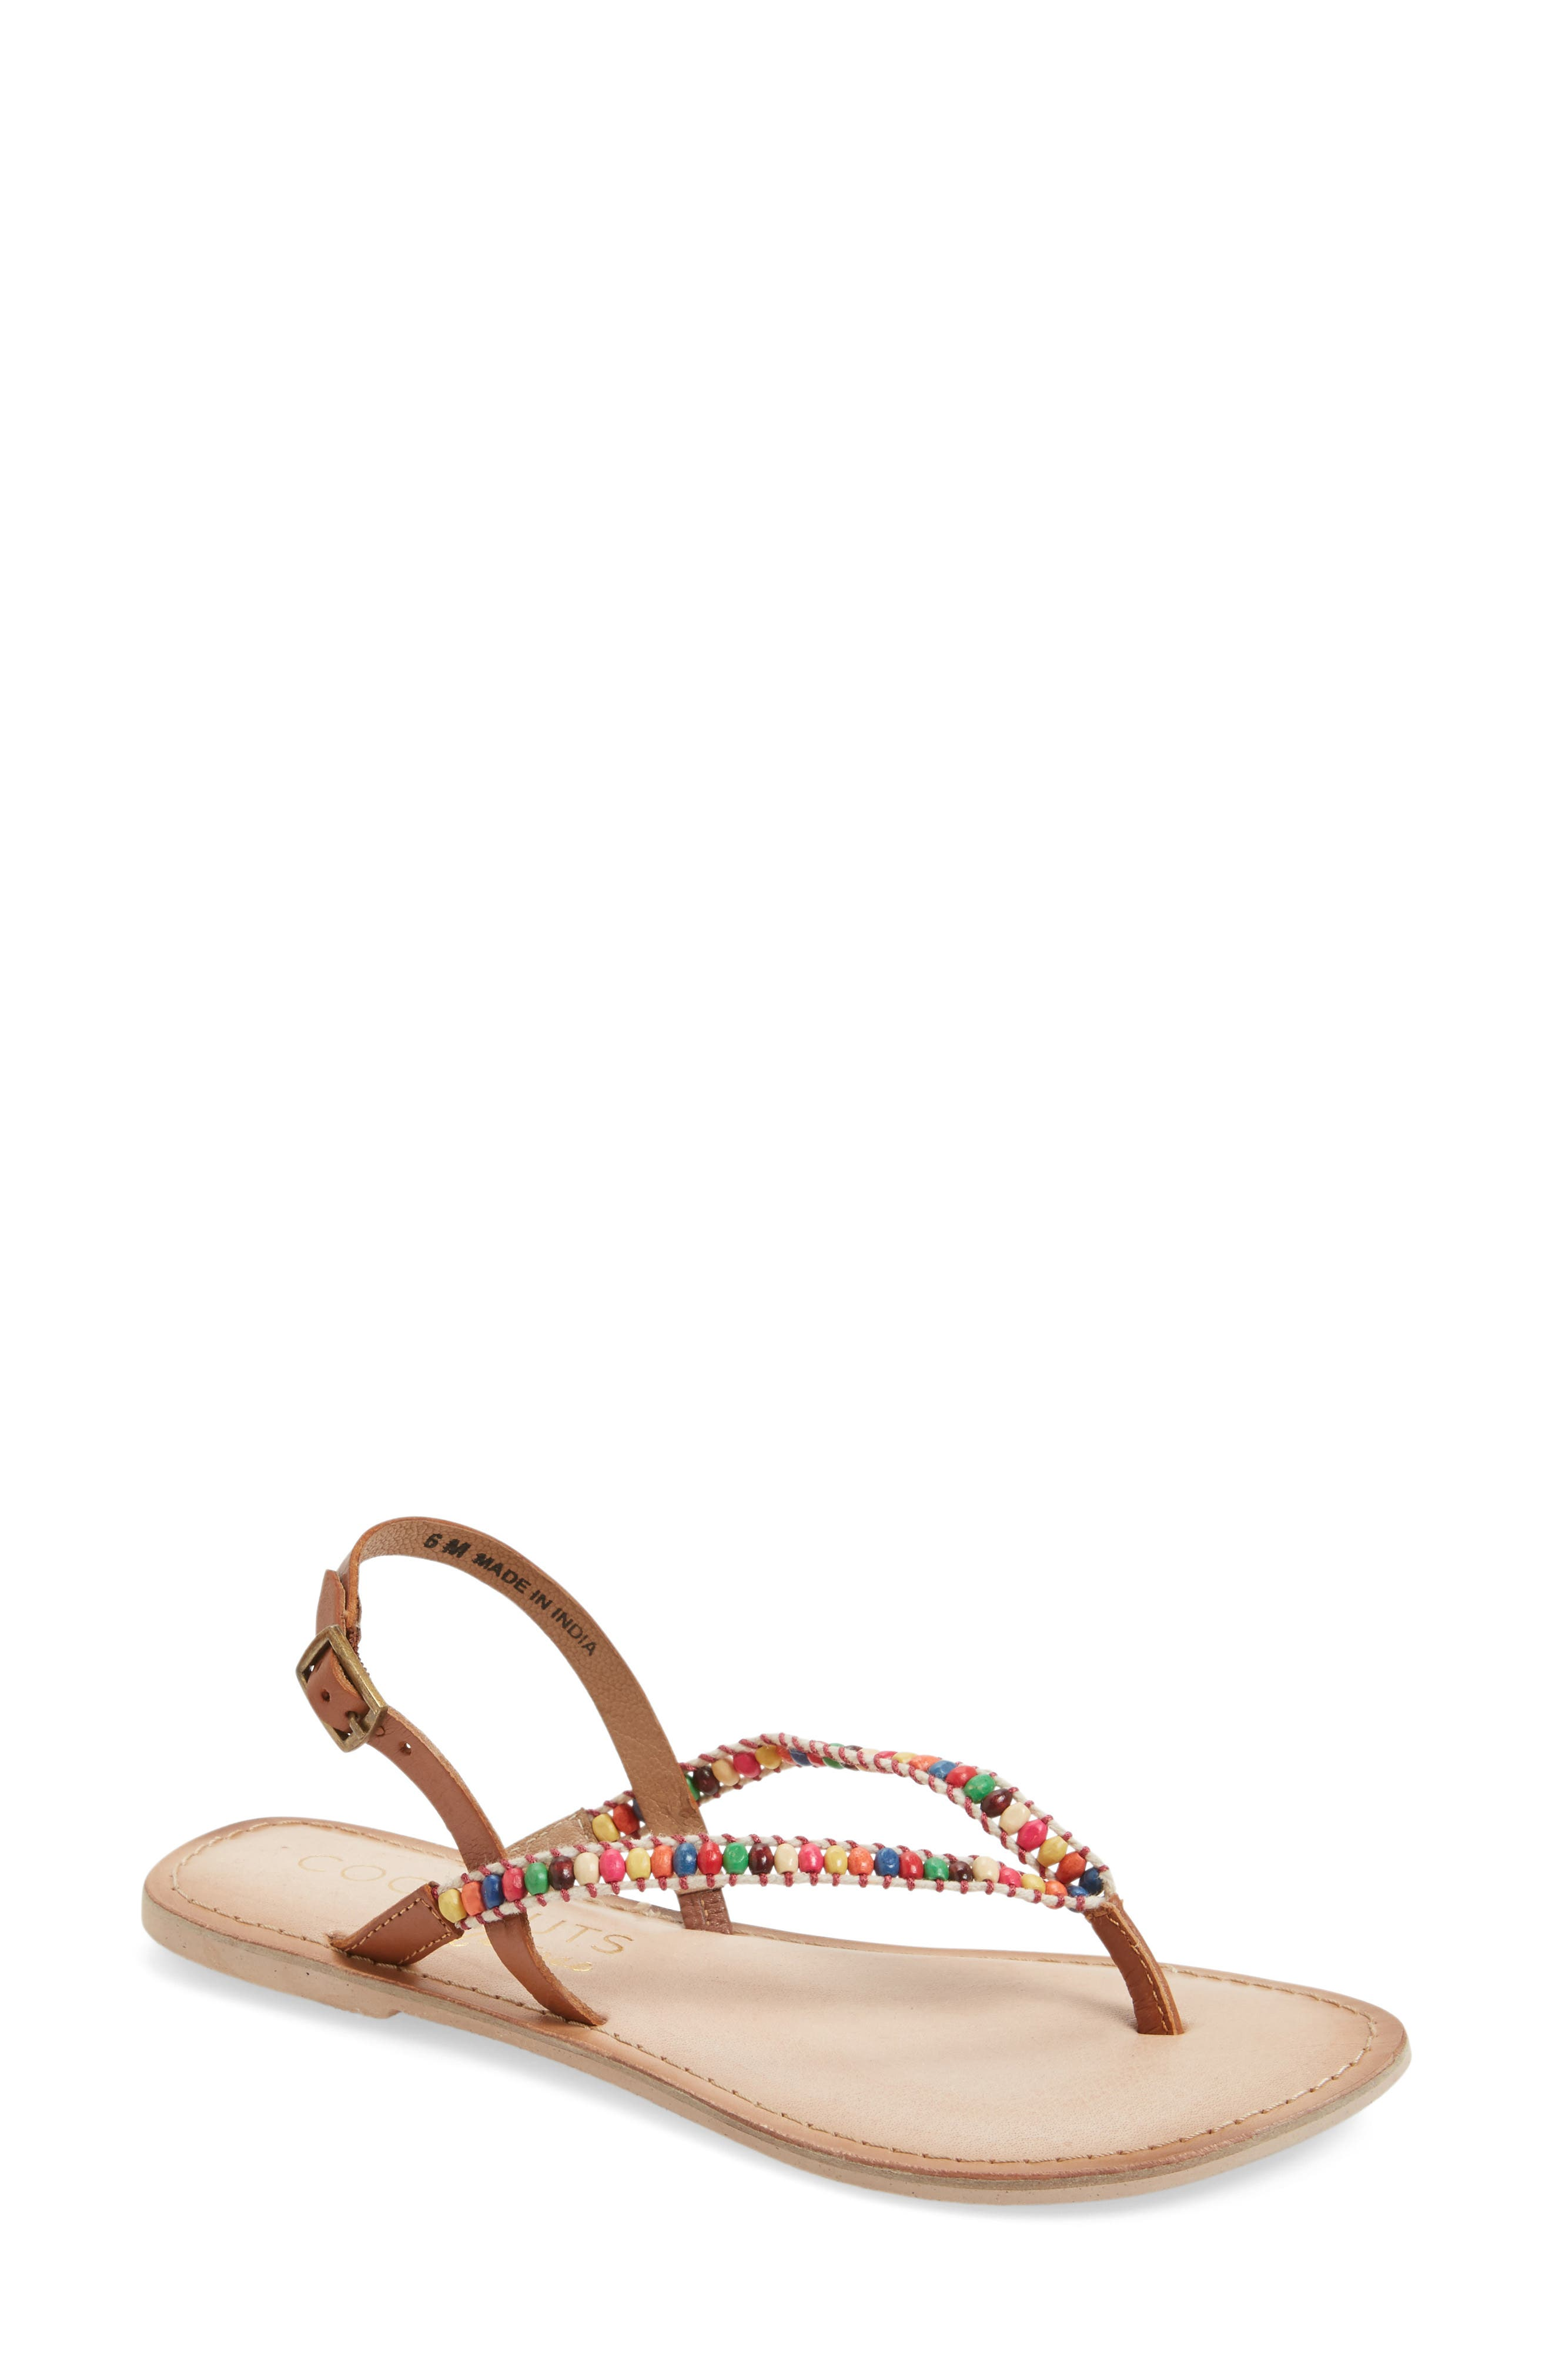 Main Image - Coconuts by Matisse Celebration Beaded Sandal (Women)